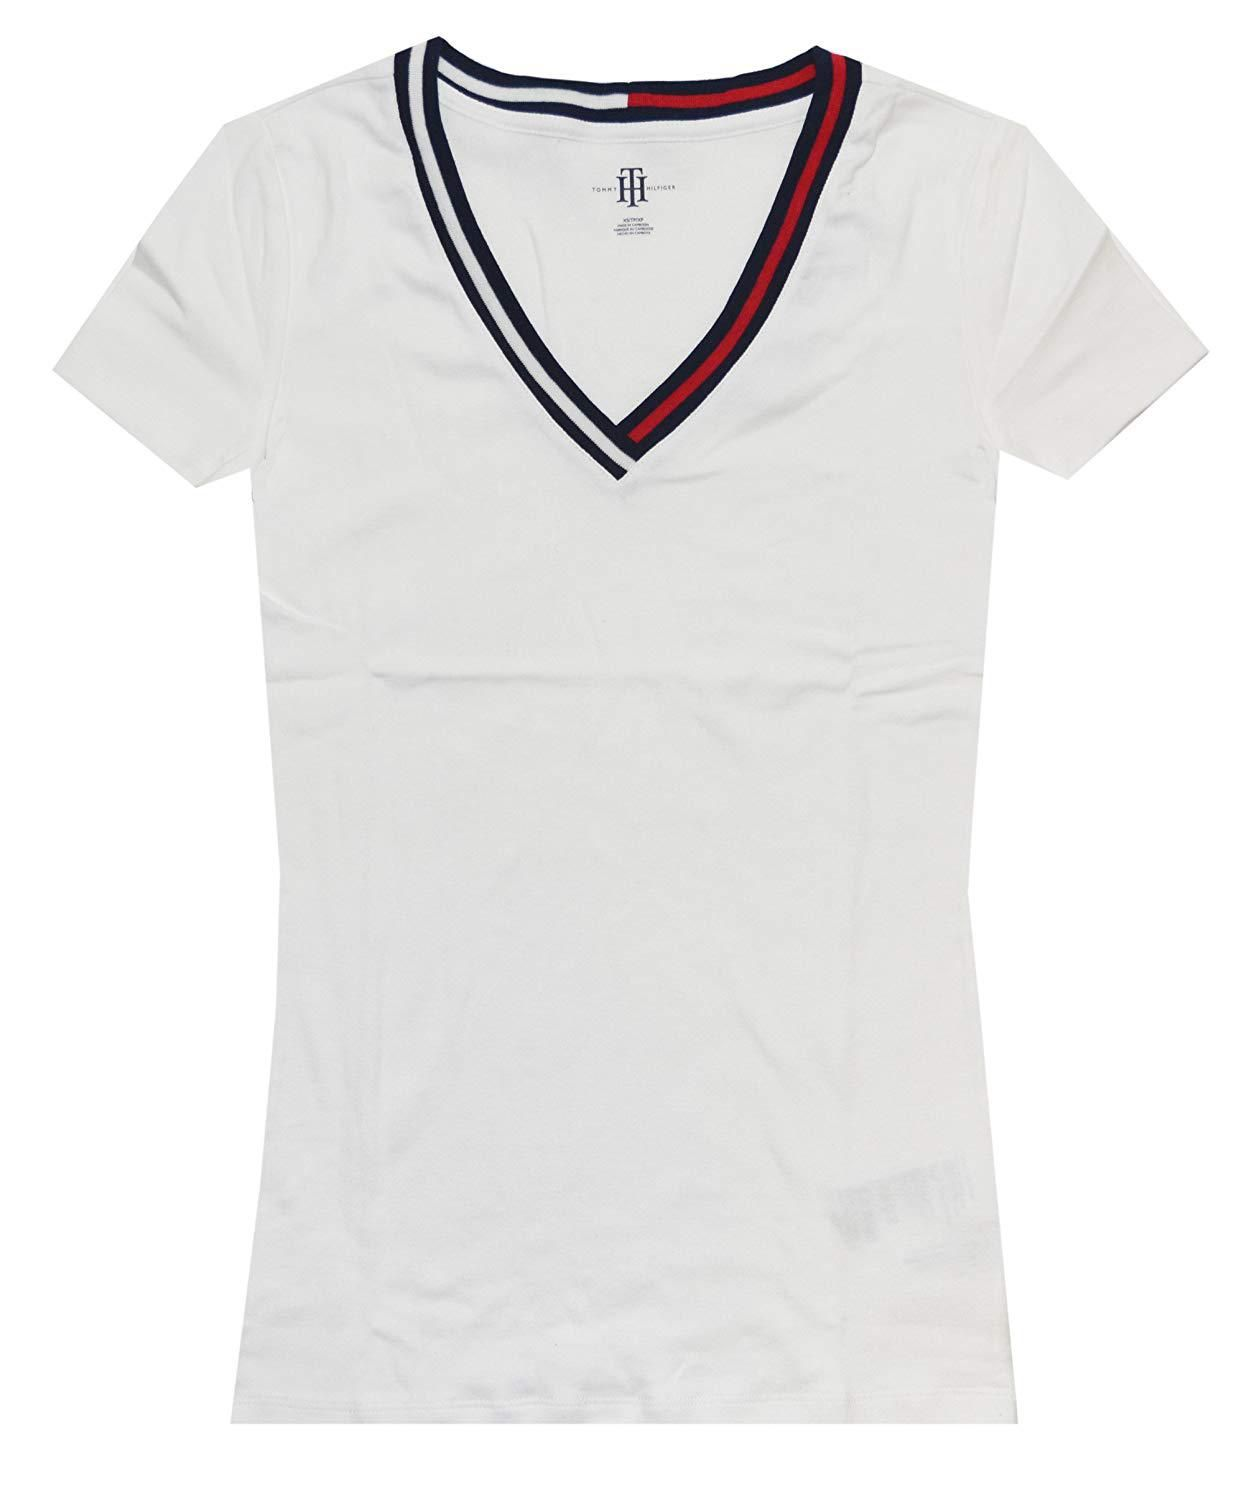 2229ed507 Tommy Hilfiger Women Signature Short Sleeve VNeck Logo Tee at Amazon Womens  Clothing store, Amazon Affiliate link. Click image for detail, #Amazon  #tommy ...